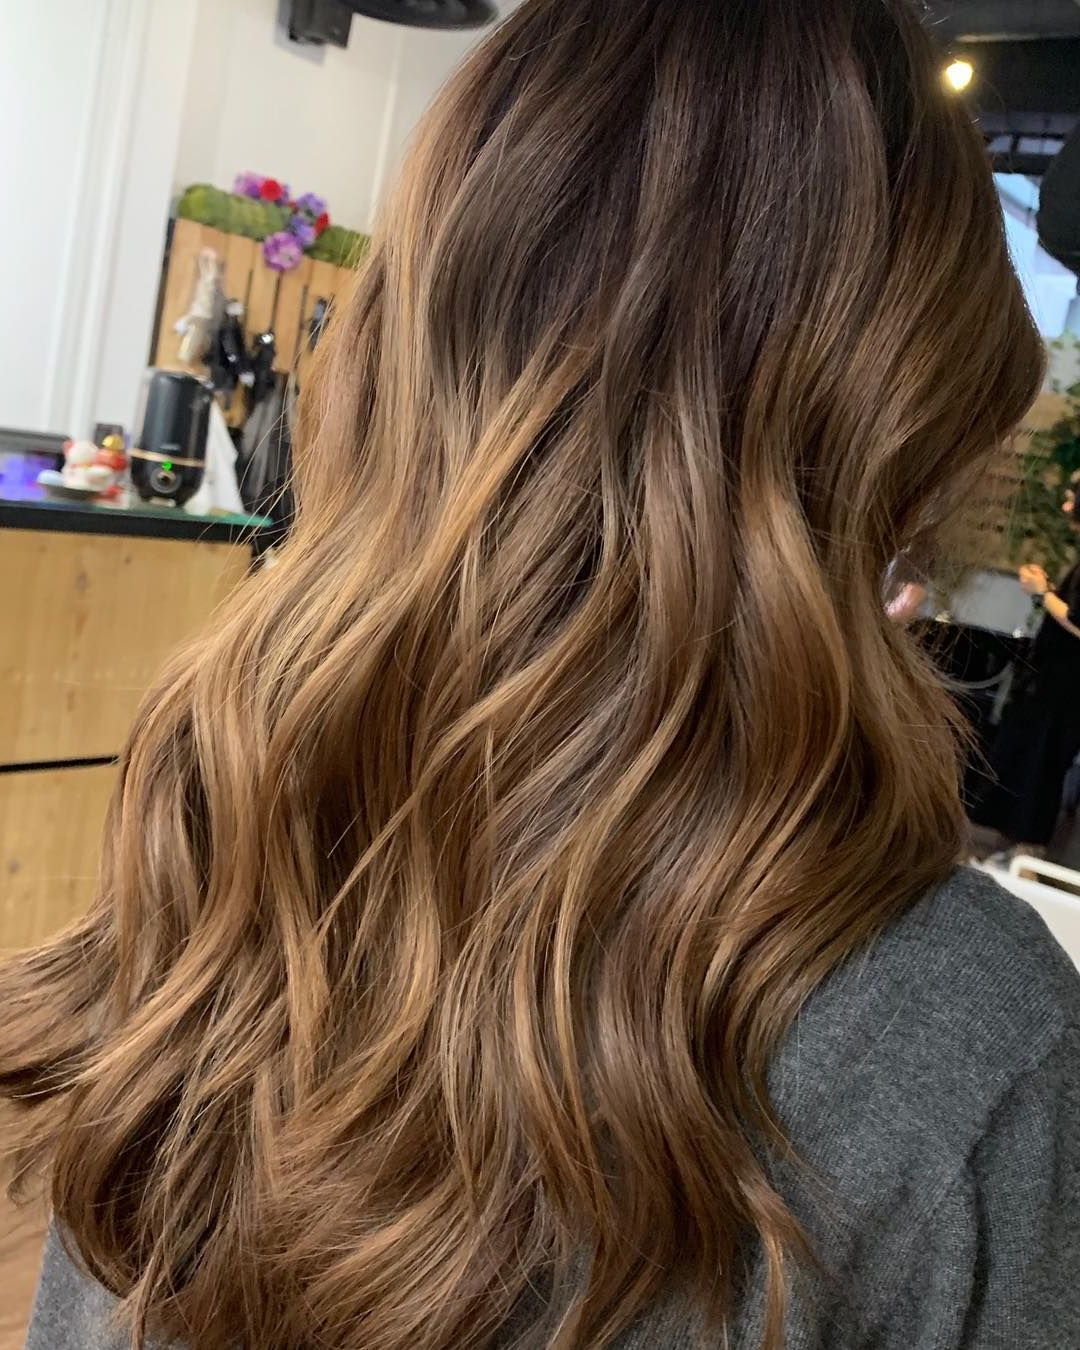 Guytangmydentity #hairbesties #metallics #reflective #shiny For Most Up To Date Shiny Tousled Curls Hairstyles (View 7 of 20)